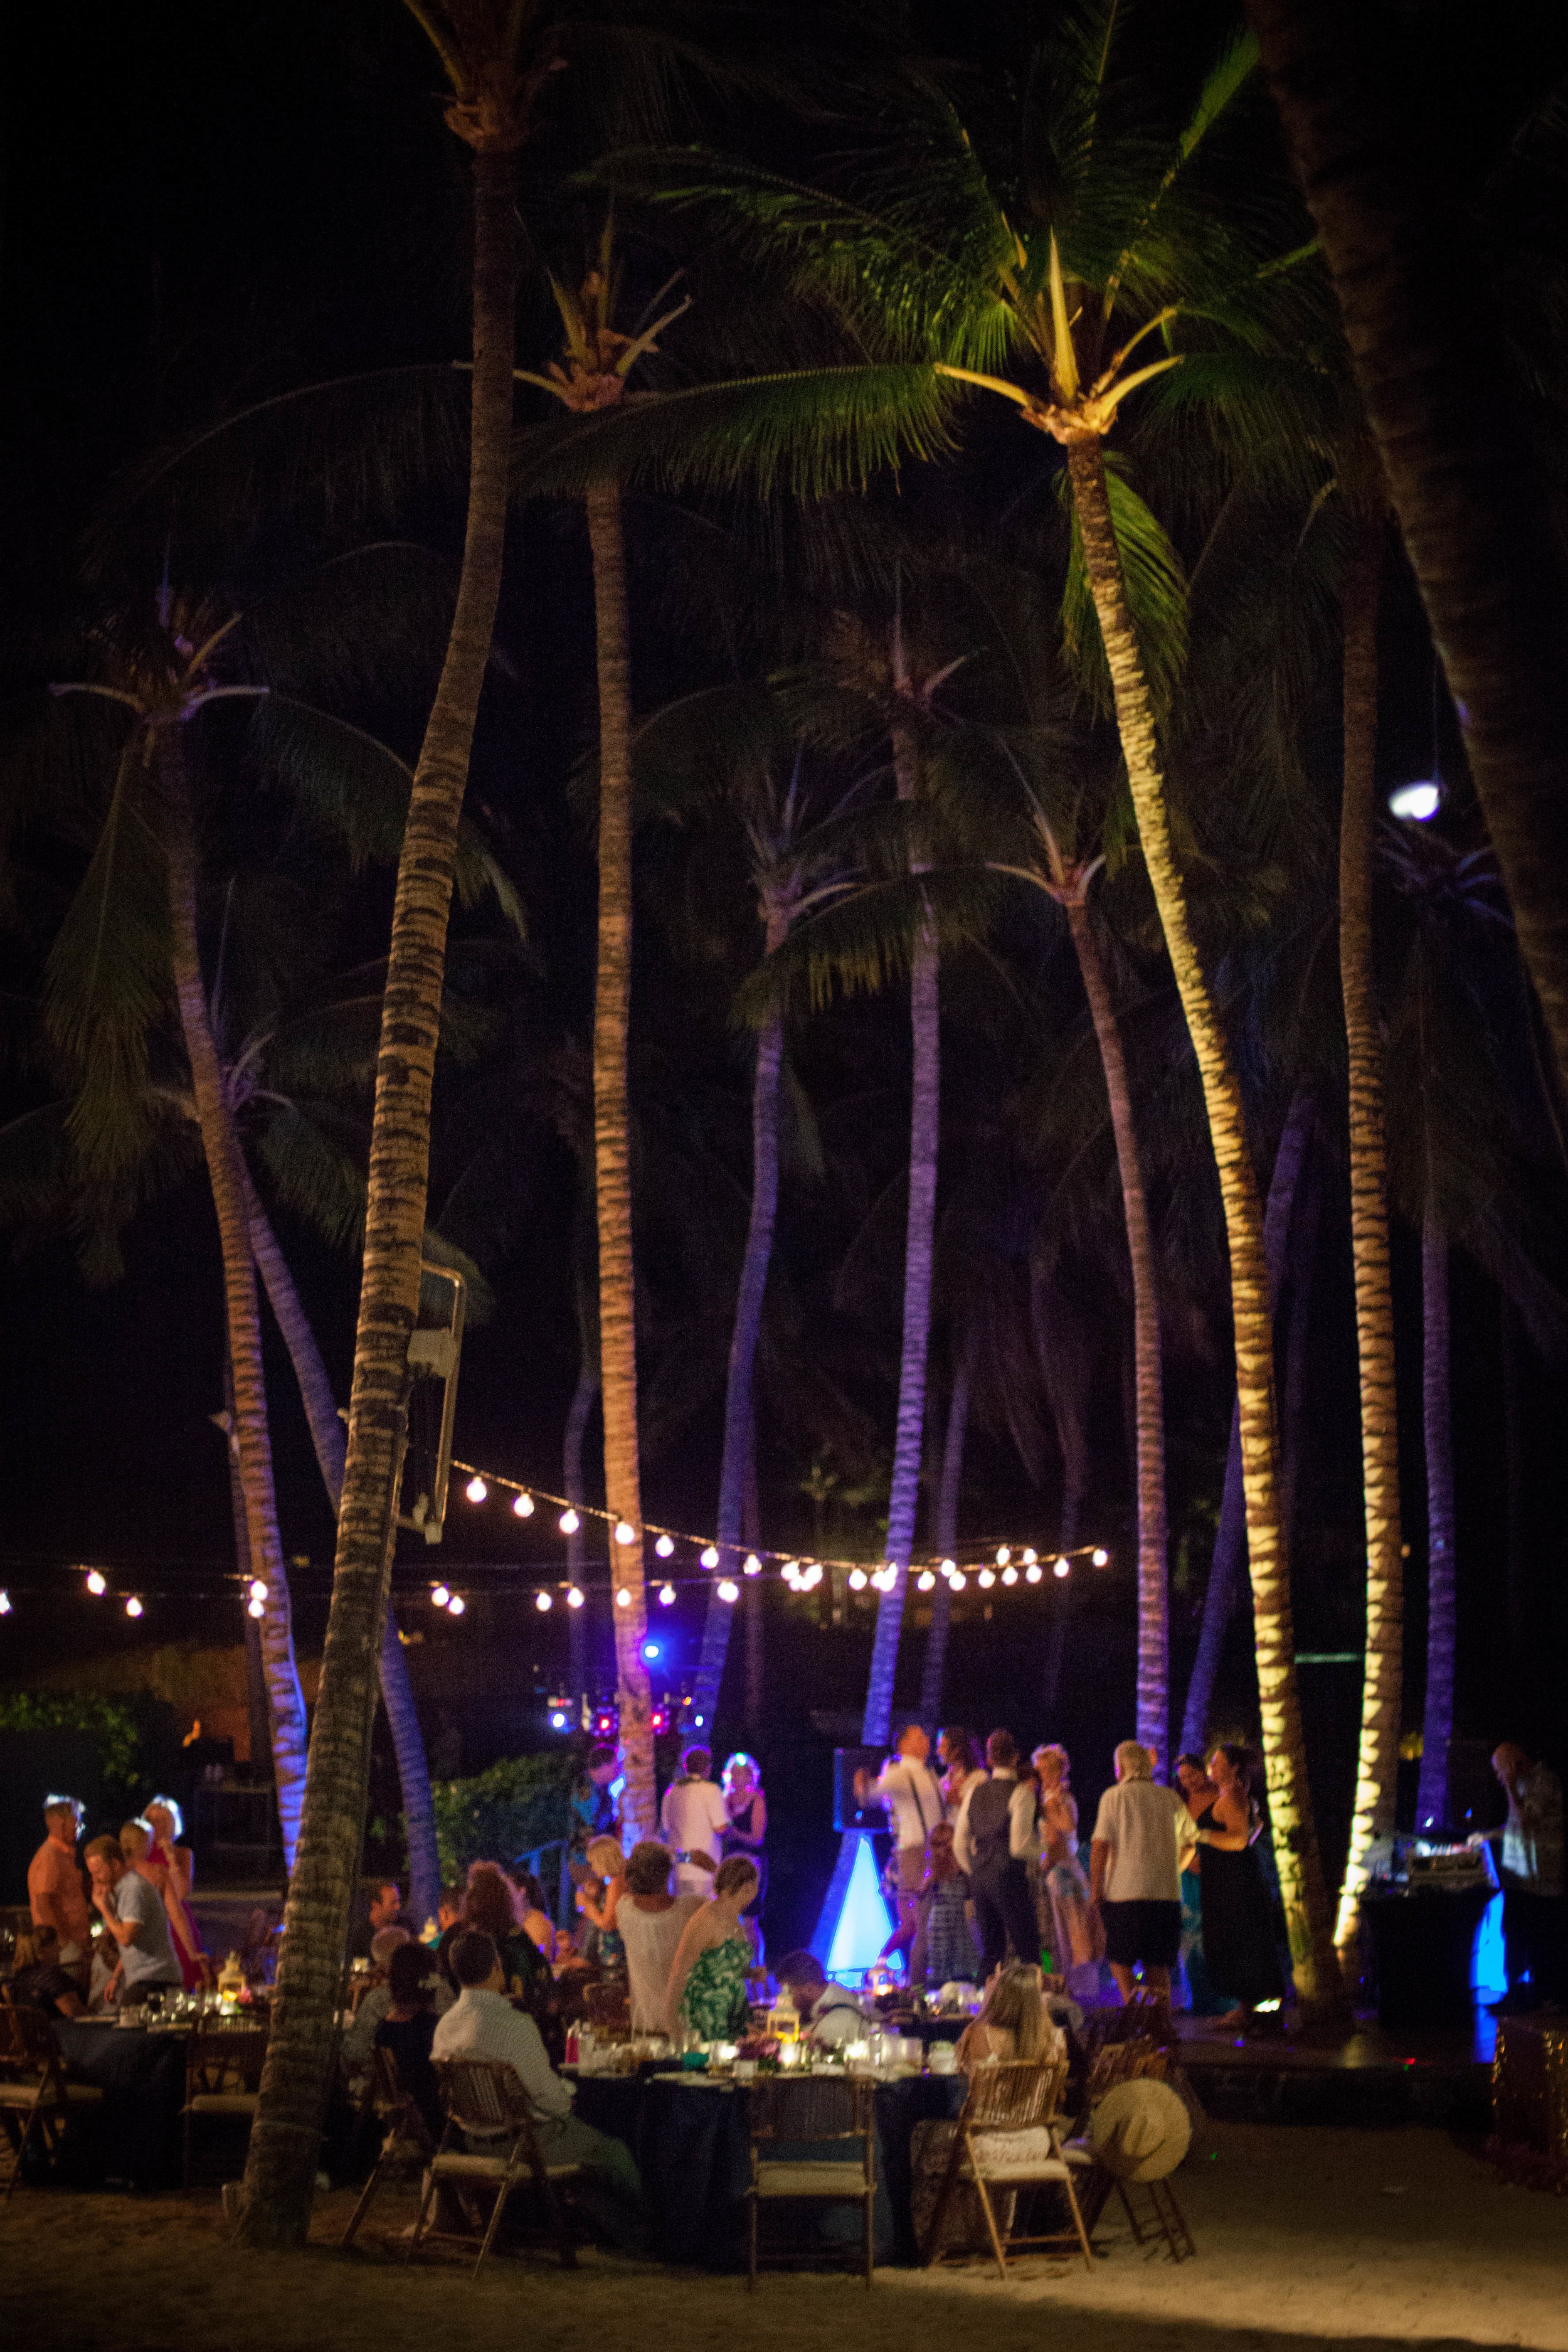 big island hawaii fairmont orchid beach wedding © kelilina photography 20170812211817-1.jpg